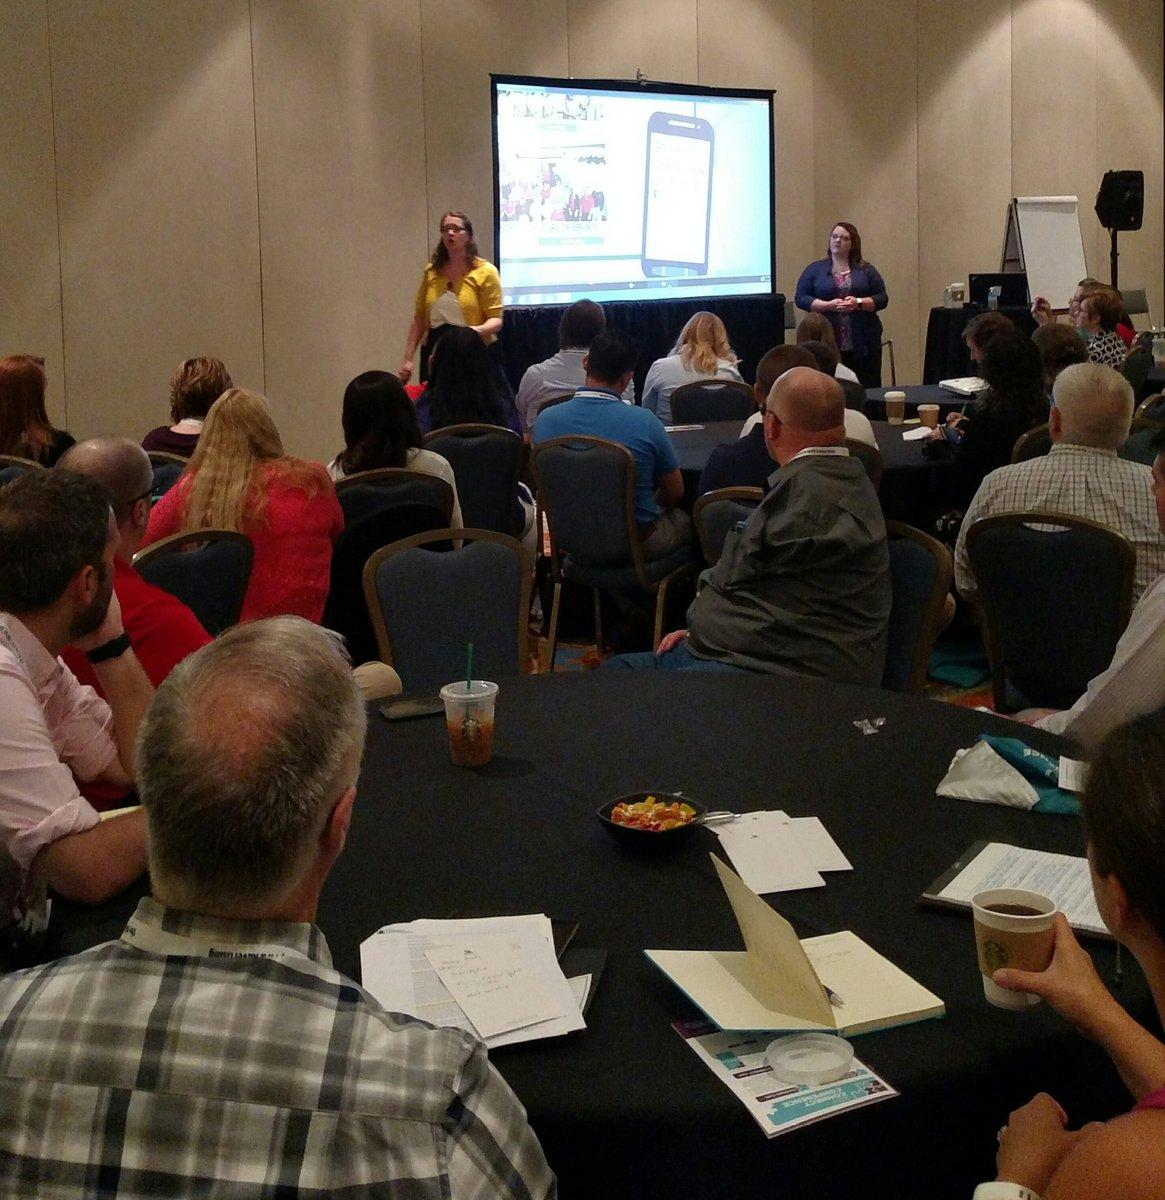 #ruralite social media maven Megan McKoy-Noe is killing it B4 a packed house  @ the  #NRECA Connect event. <br>http://pic.twitter.com/snAkjubuMQ